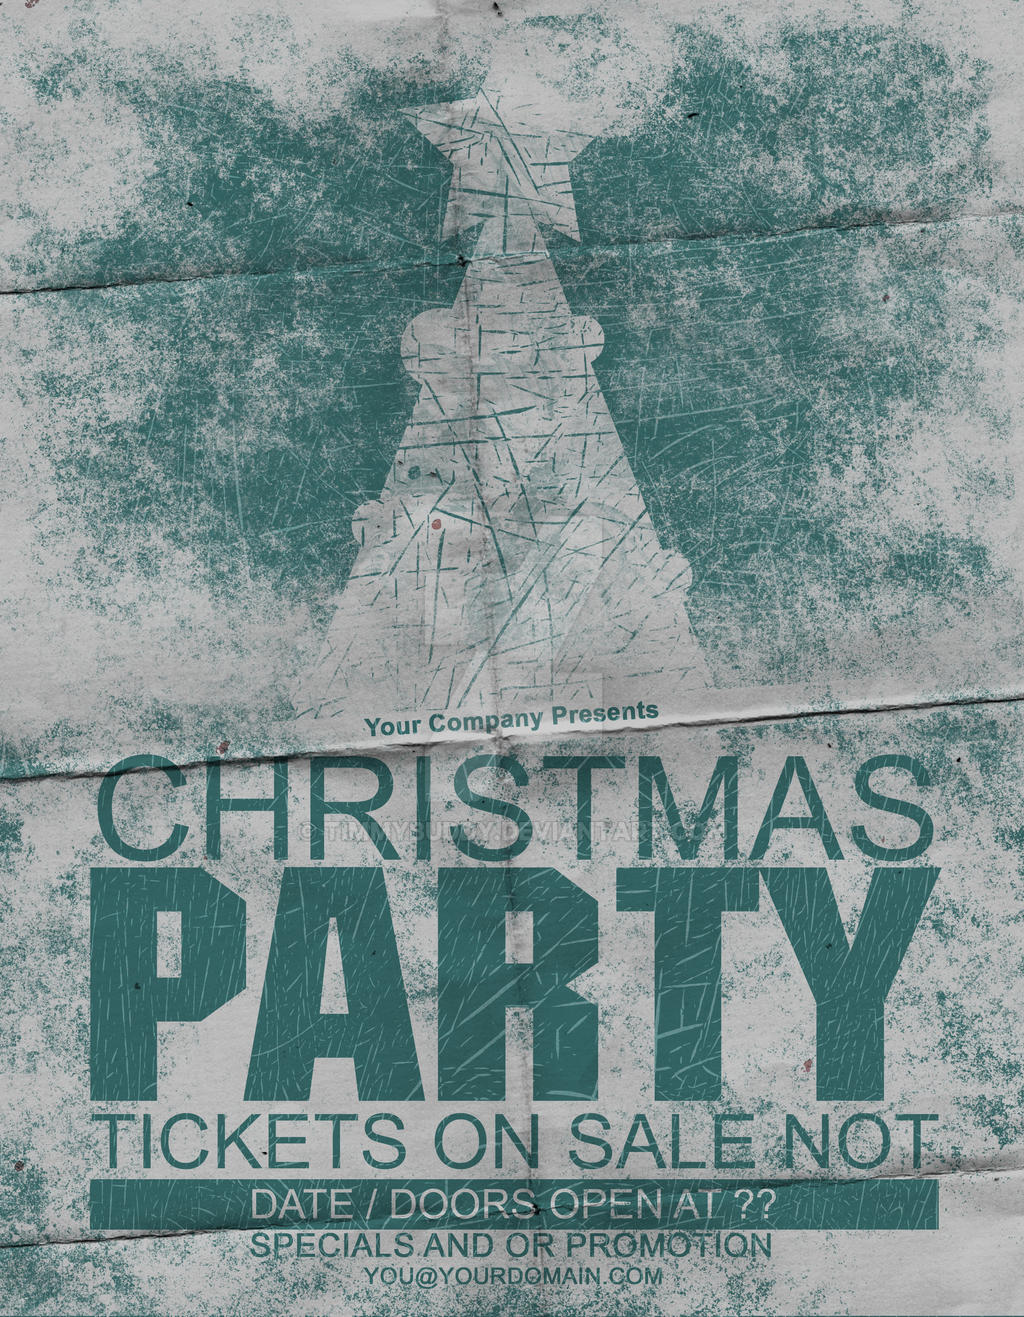 christmas party flyer template by timmybuddy on christmas party flyer template by timmybuddy christmas party flyer template by timmybuddy